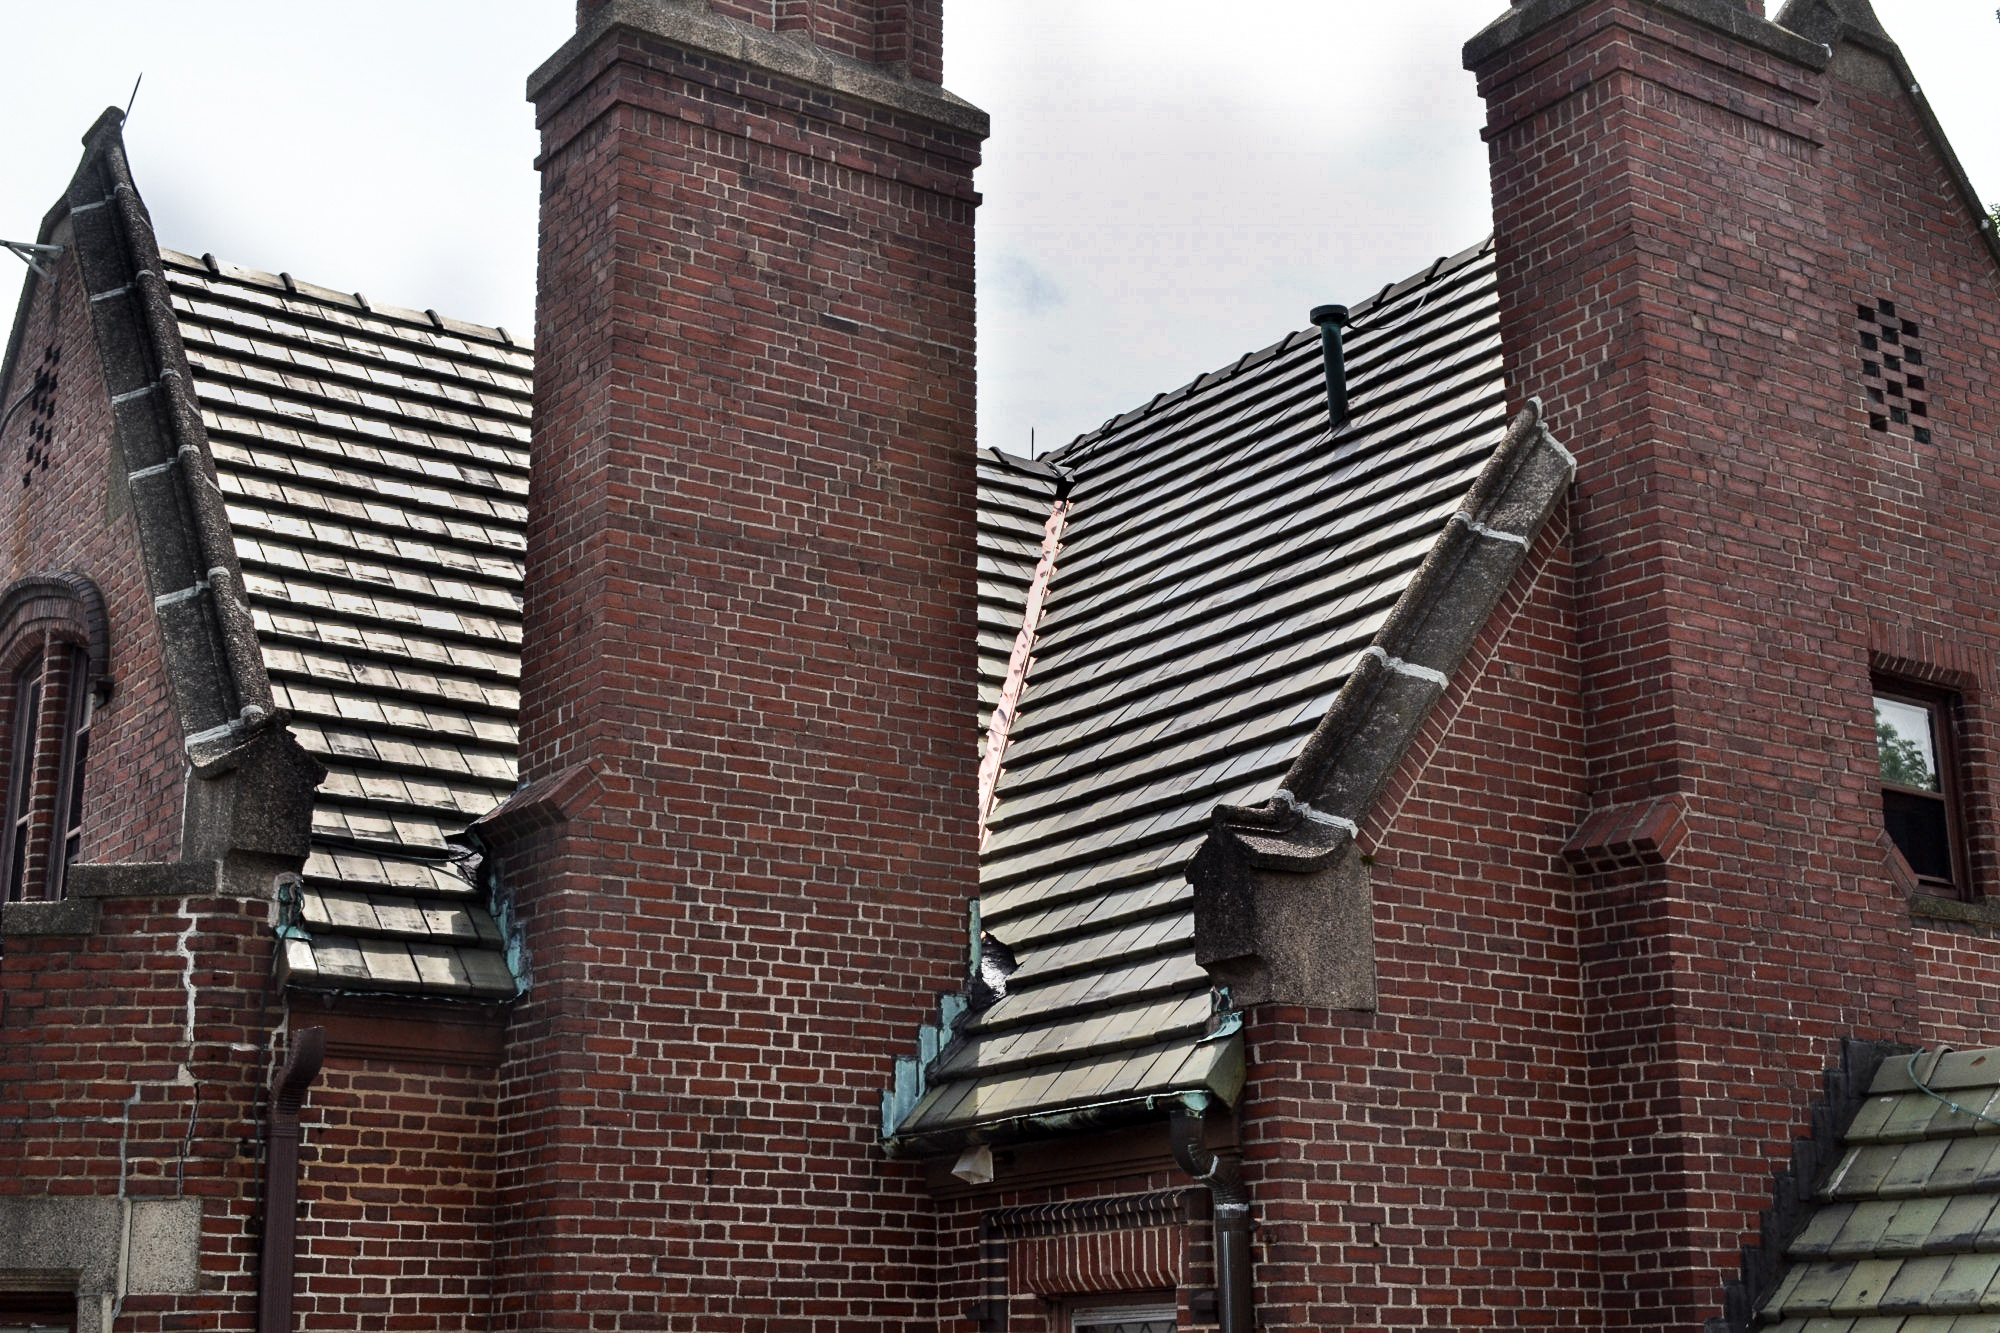 Bethesda Lutheran Church Asked Ct Roofcrafters To Design A Plan For Substantial Roof Repairs On The Mansion And School Roofs This Included Masonry